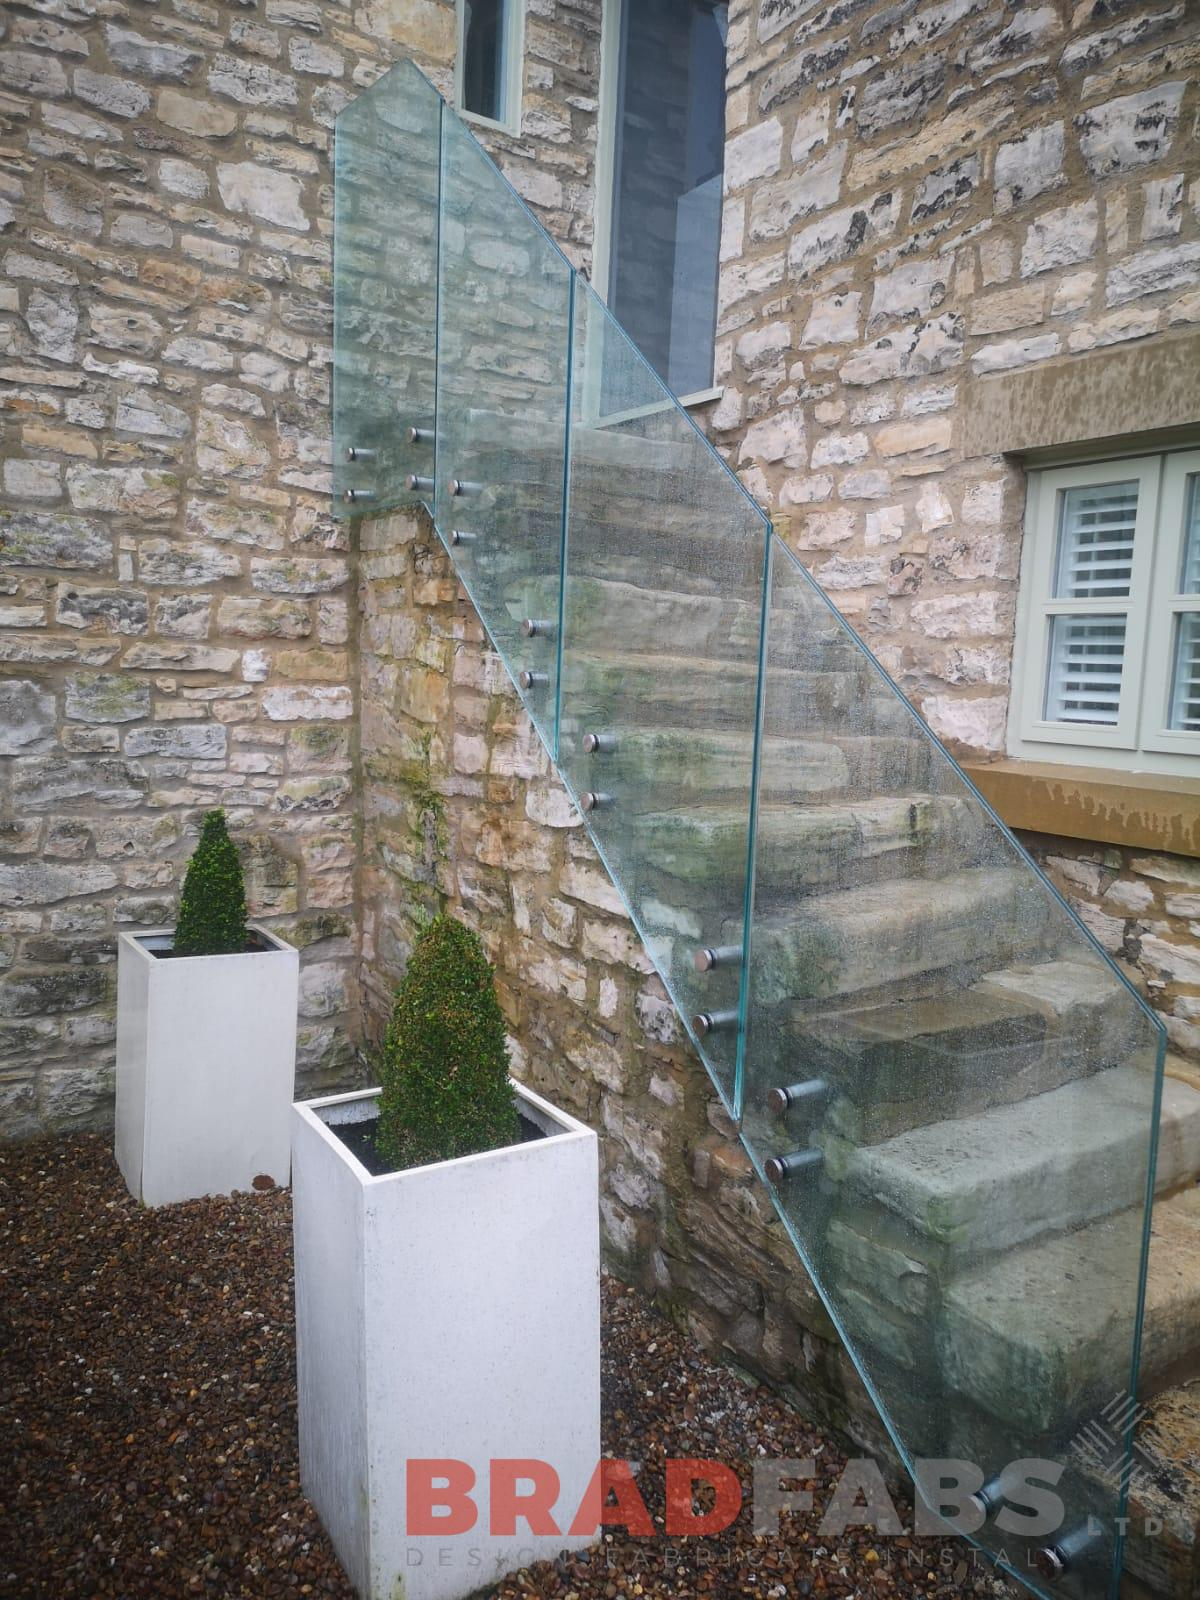 laminated safety glass balustrade for external stone steps by Bradfabs